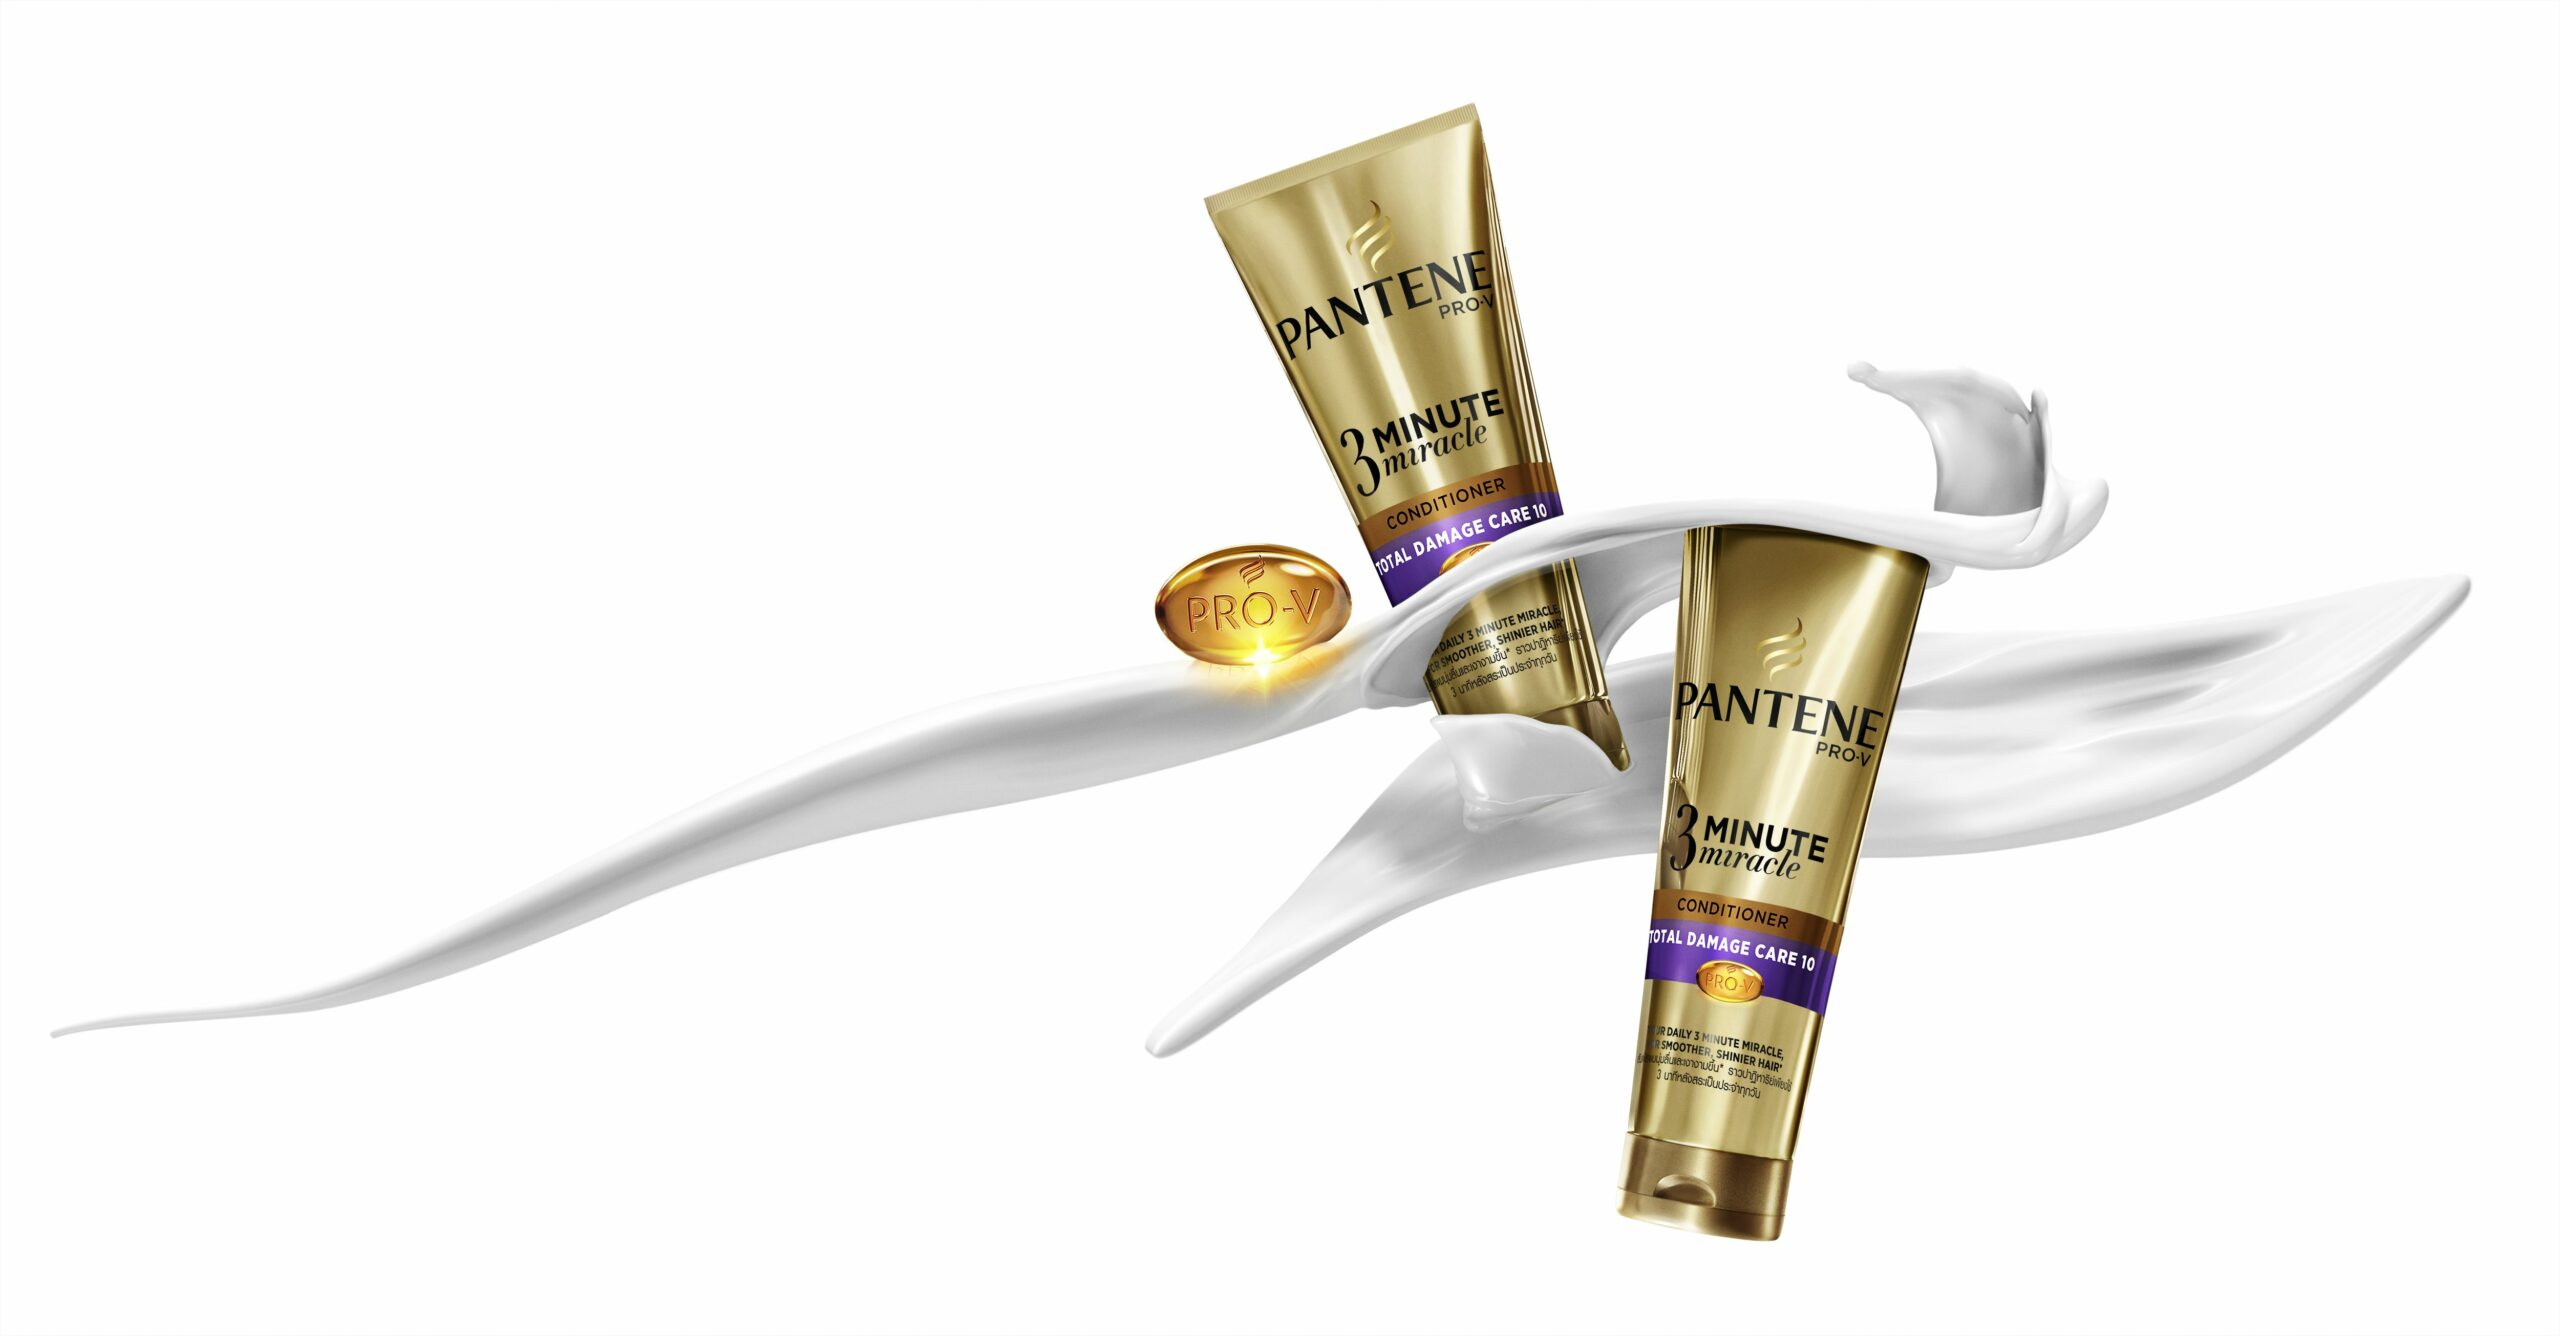 Pantene-Conditioner-3-Minute-Miracle-scaled